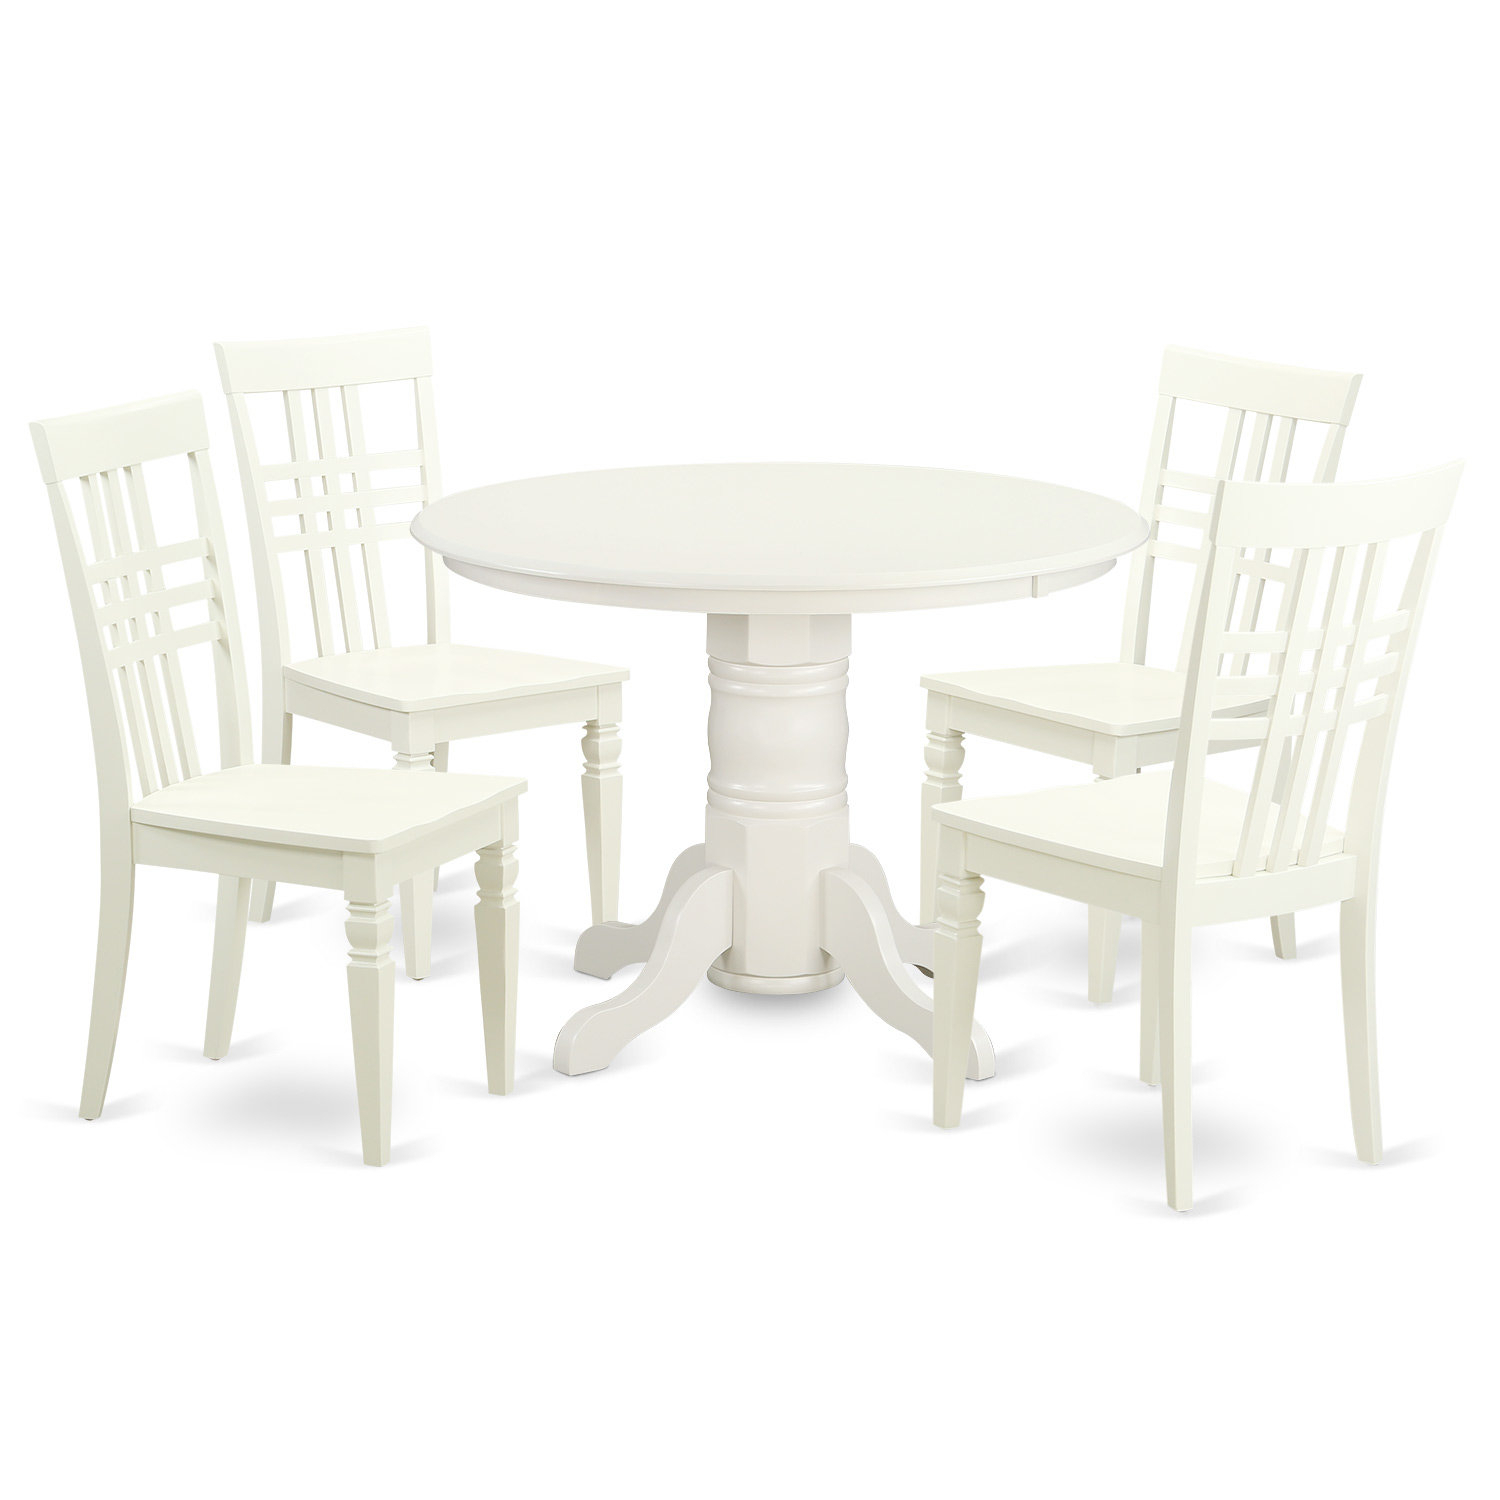 East West Furniture 5 Piece Dining Set Pertaining To Newest Lamotte 5 Piece Dining Sets (Image 6 of 20)